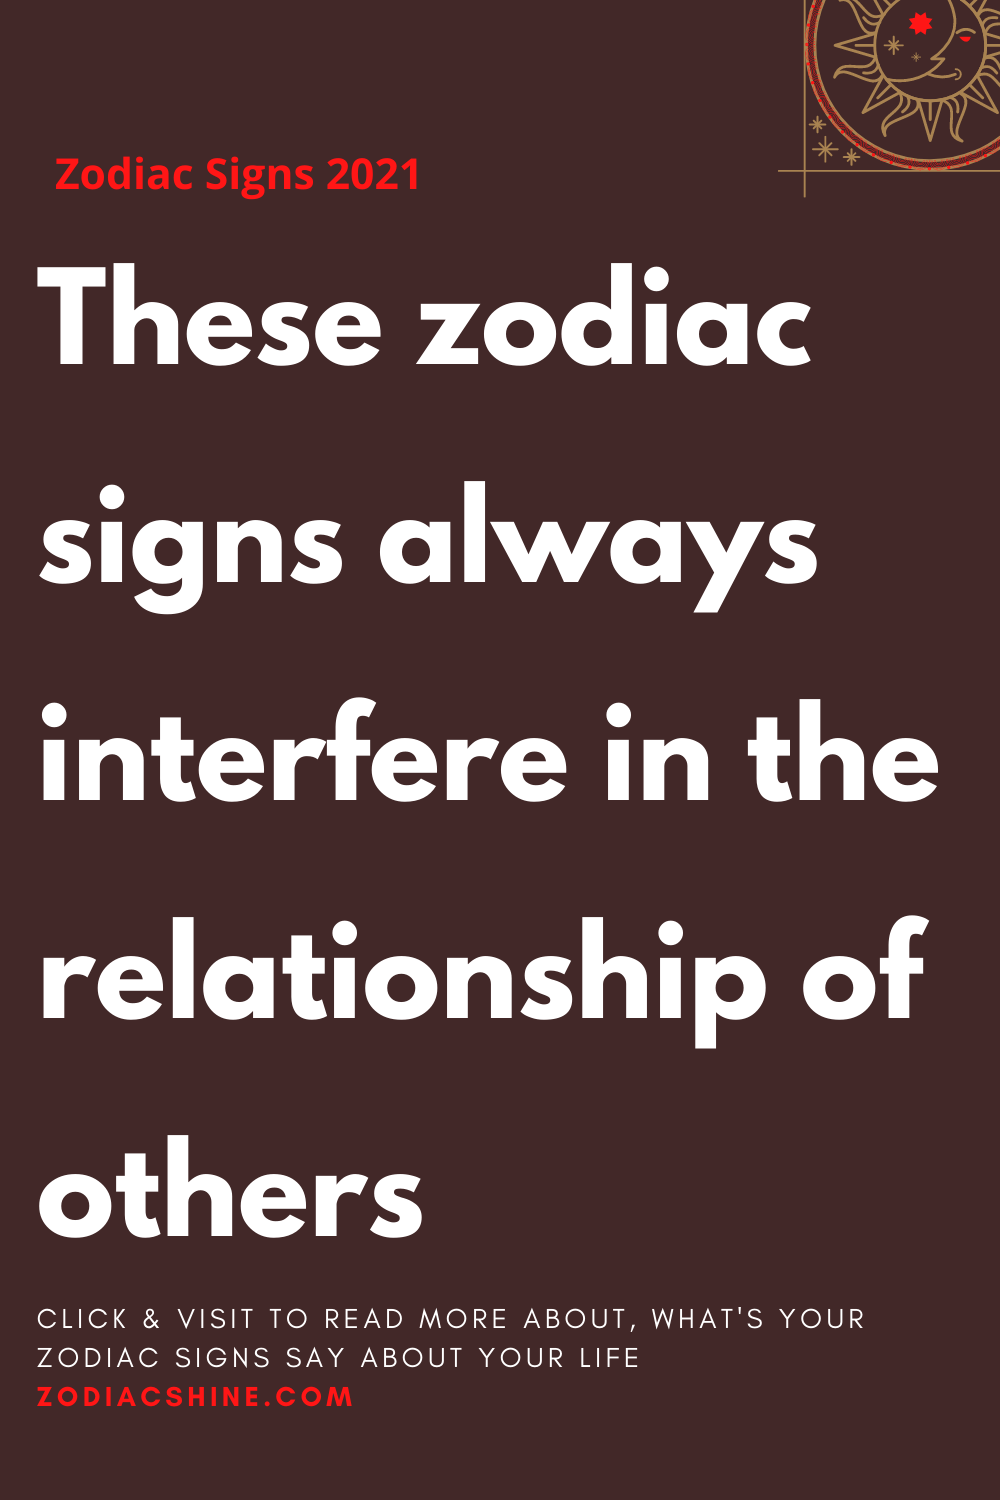 These zodiac signs always interfere in the relationship of others